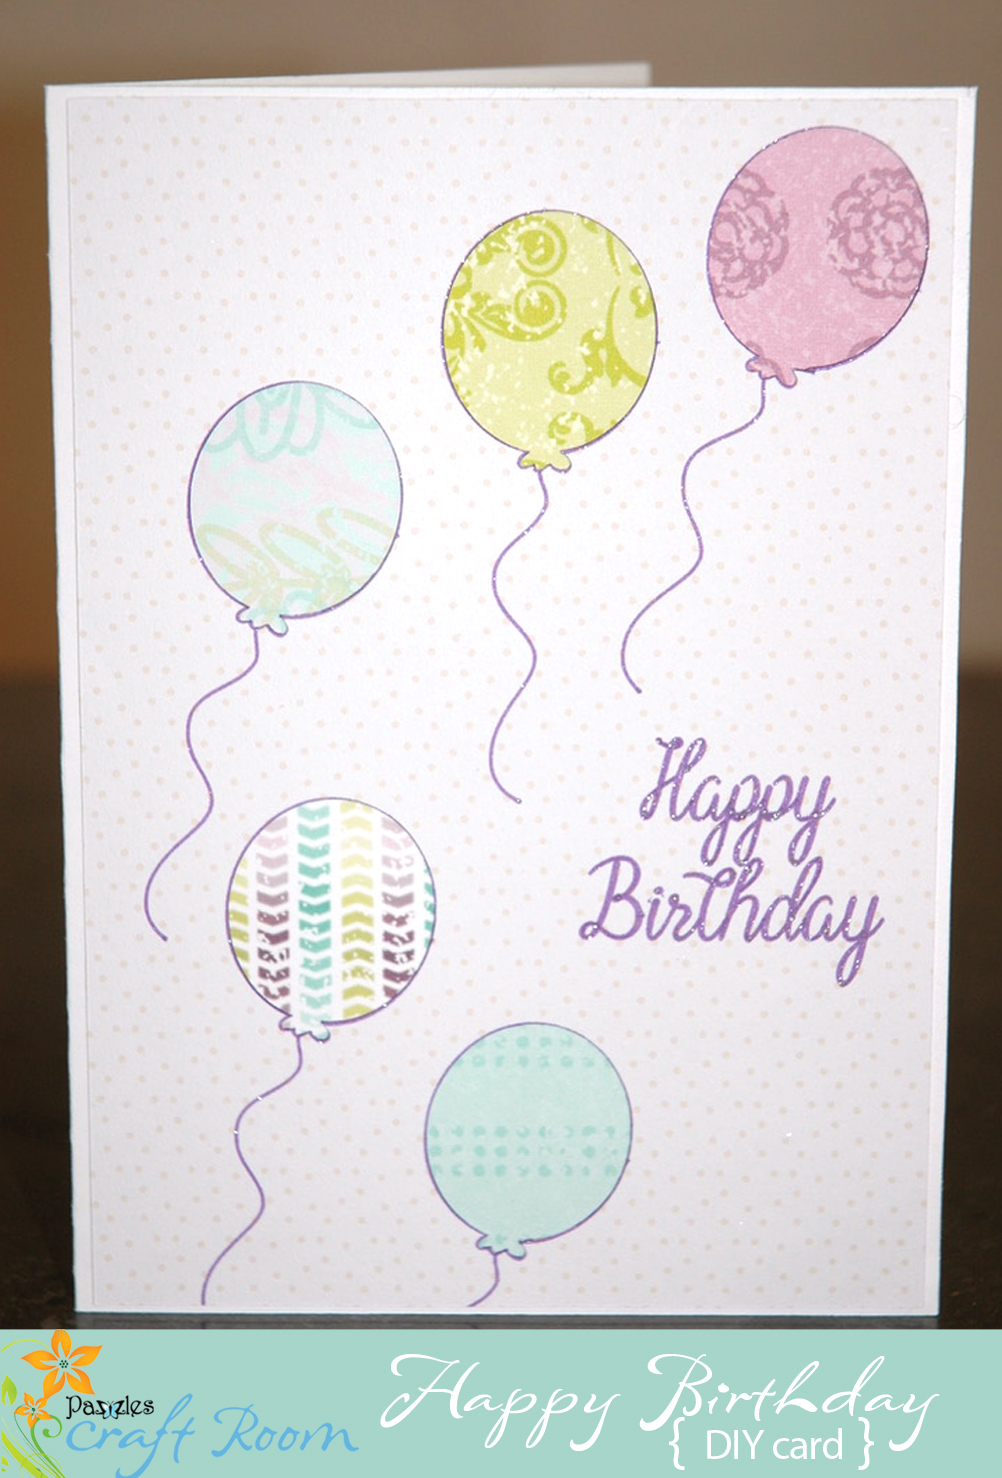 I Did A Print And Cut For The Cardstock Base Using Digital Paper Then Used Pazzles Pen Tool Balloon Outline Strings Happy Birthday